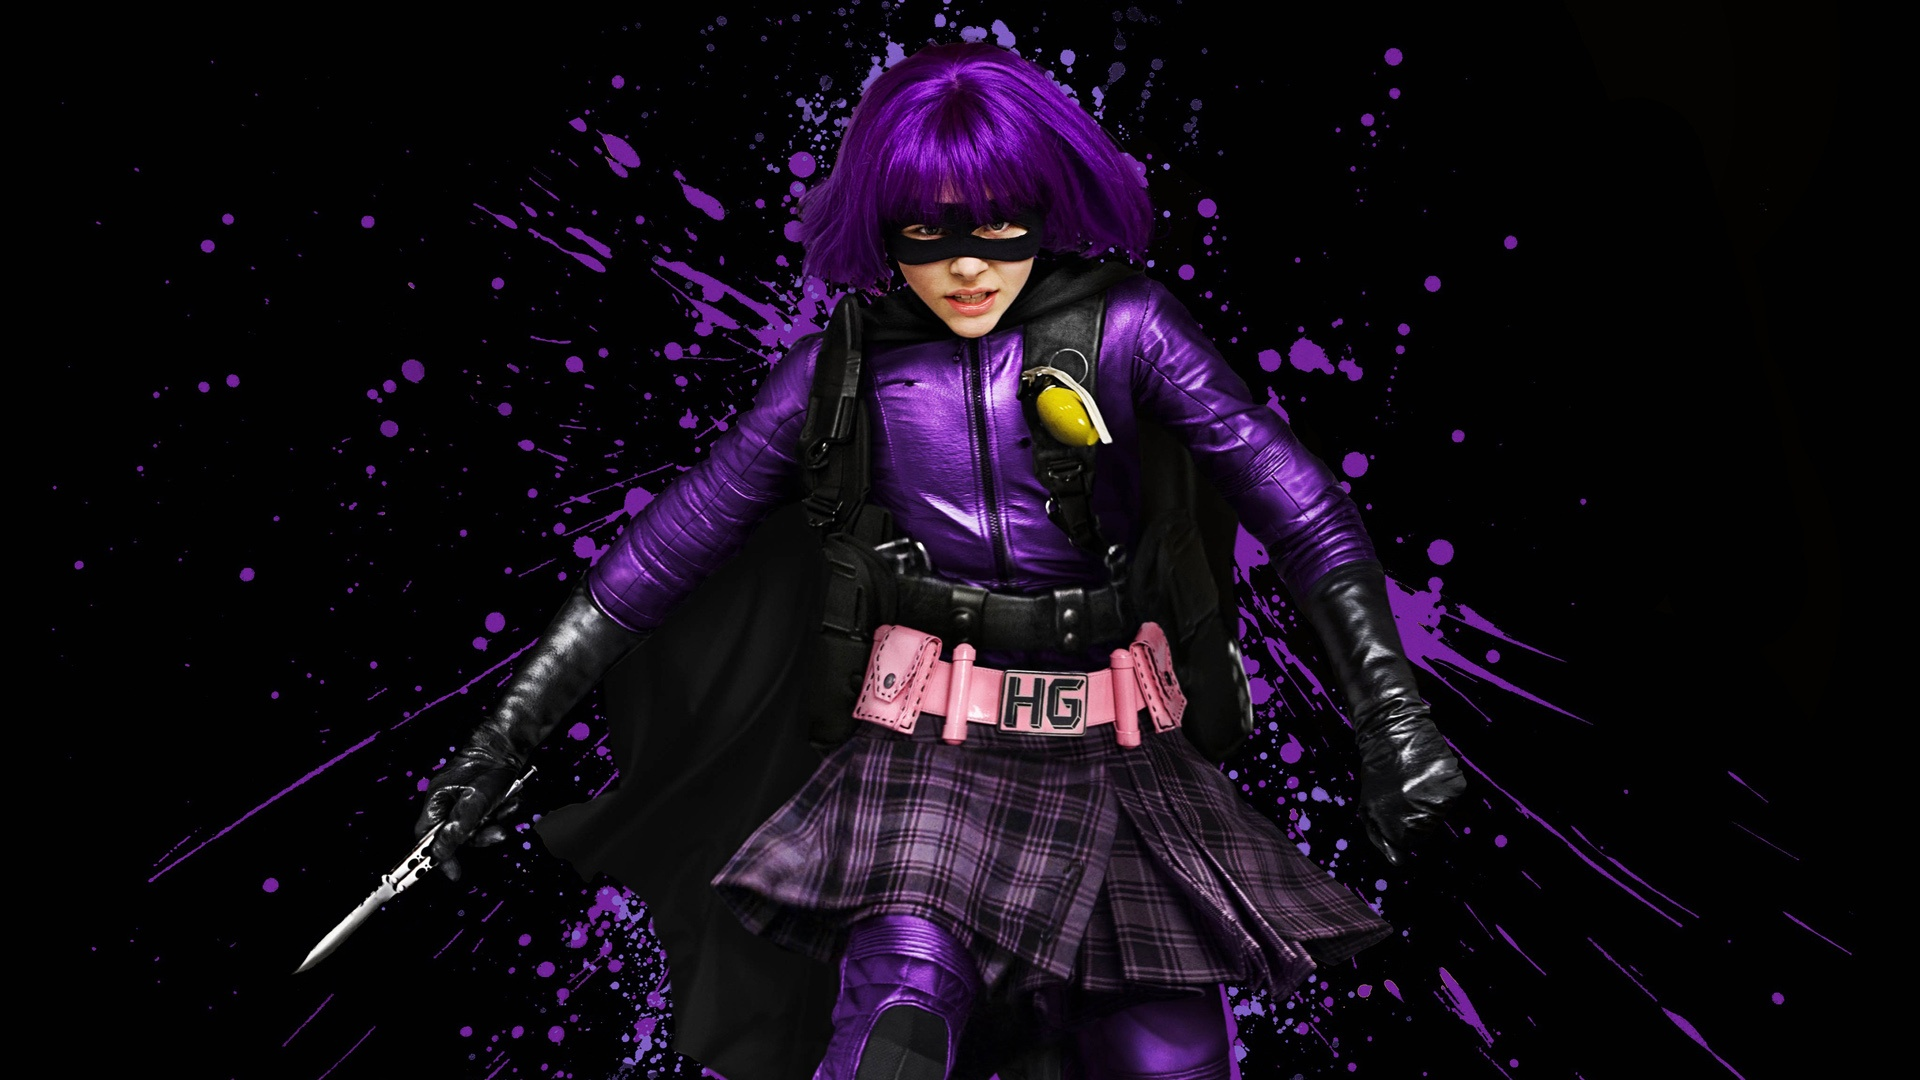 comicvine.gamespot.com||http://comicvine.gamespot.com/forums/battles-7/doya-agk-vs-hit-girl-movie-1627546/